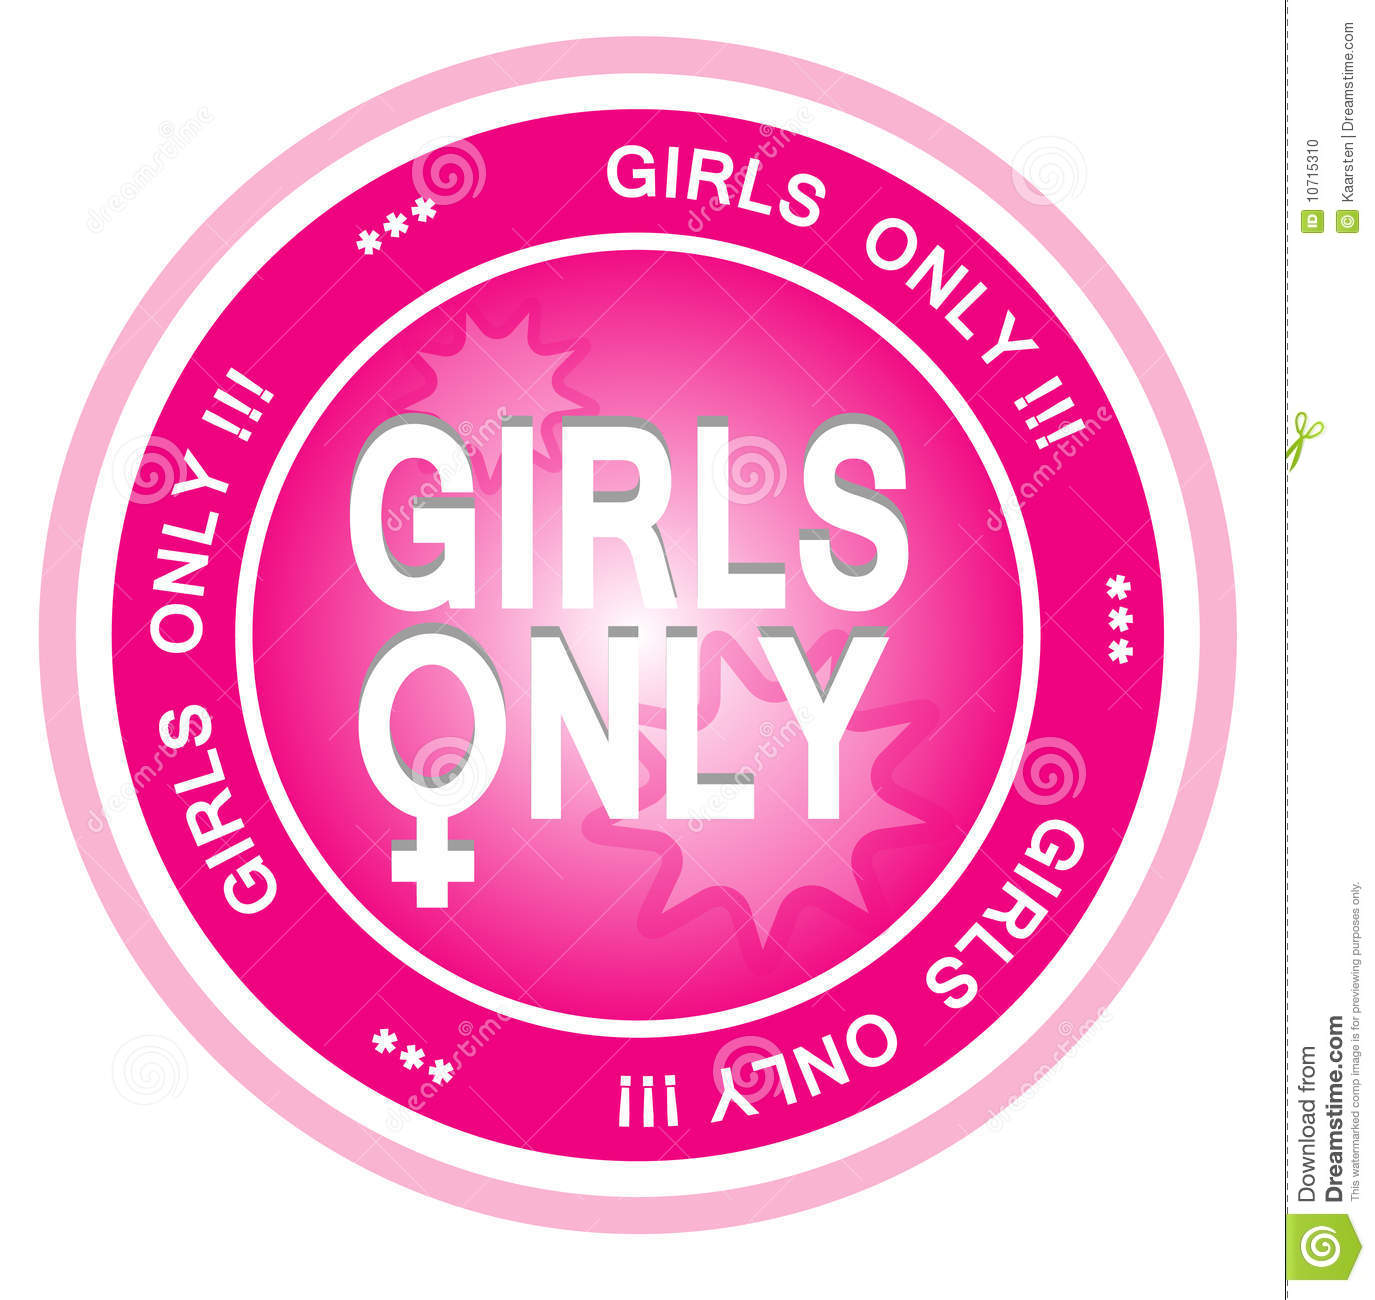 Girls Only Stock Photo - Image: 10715310